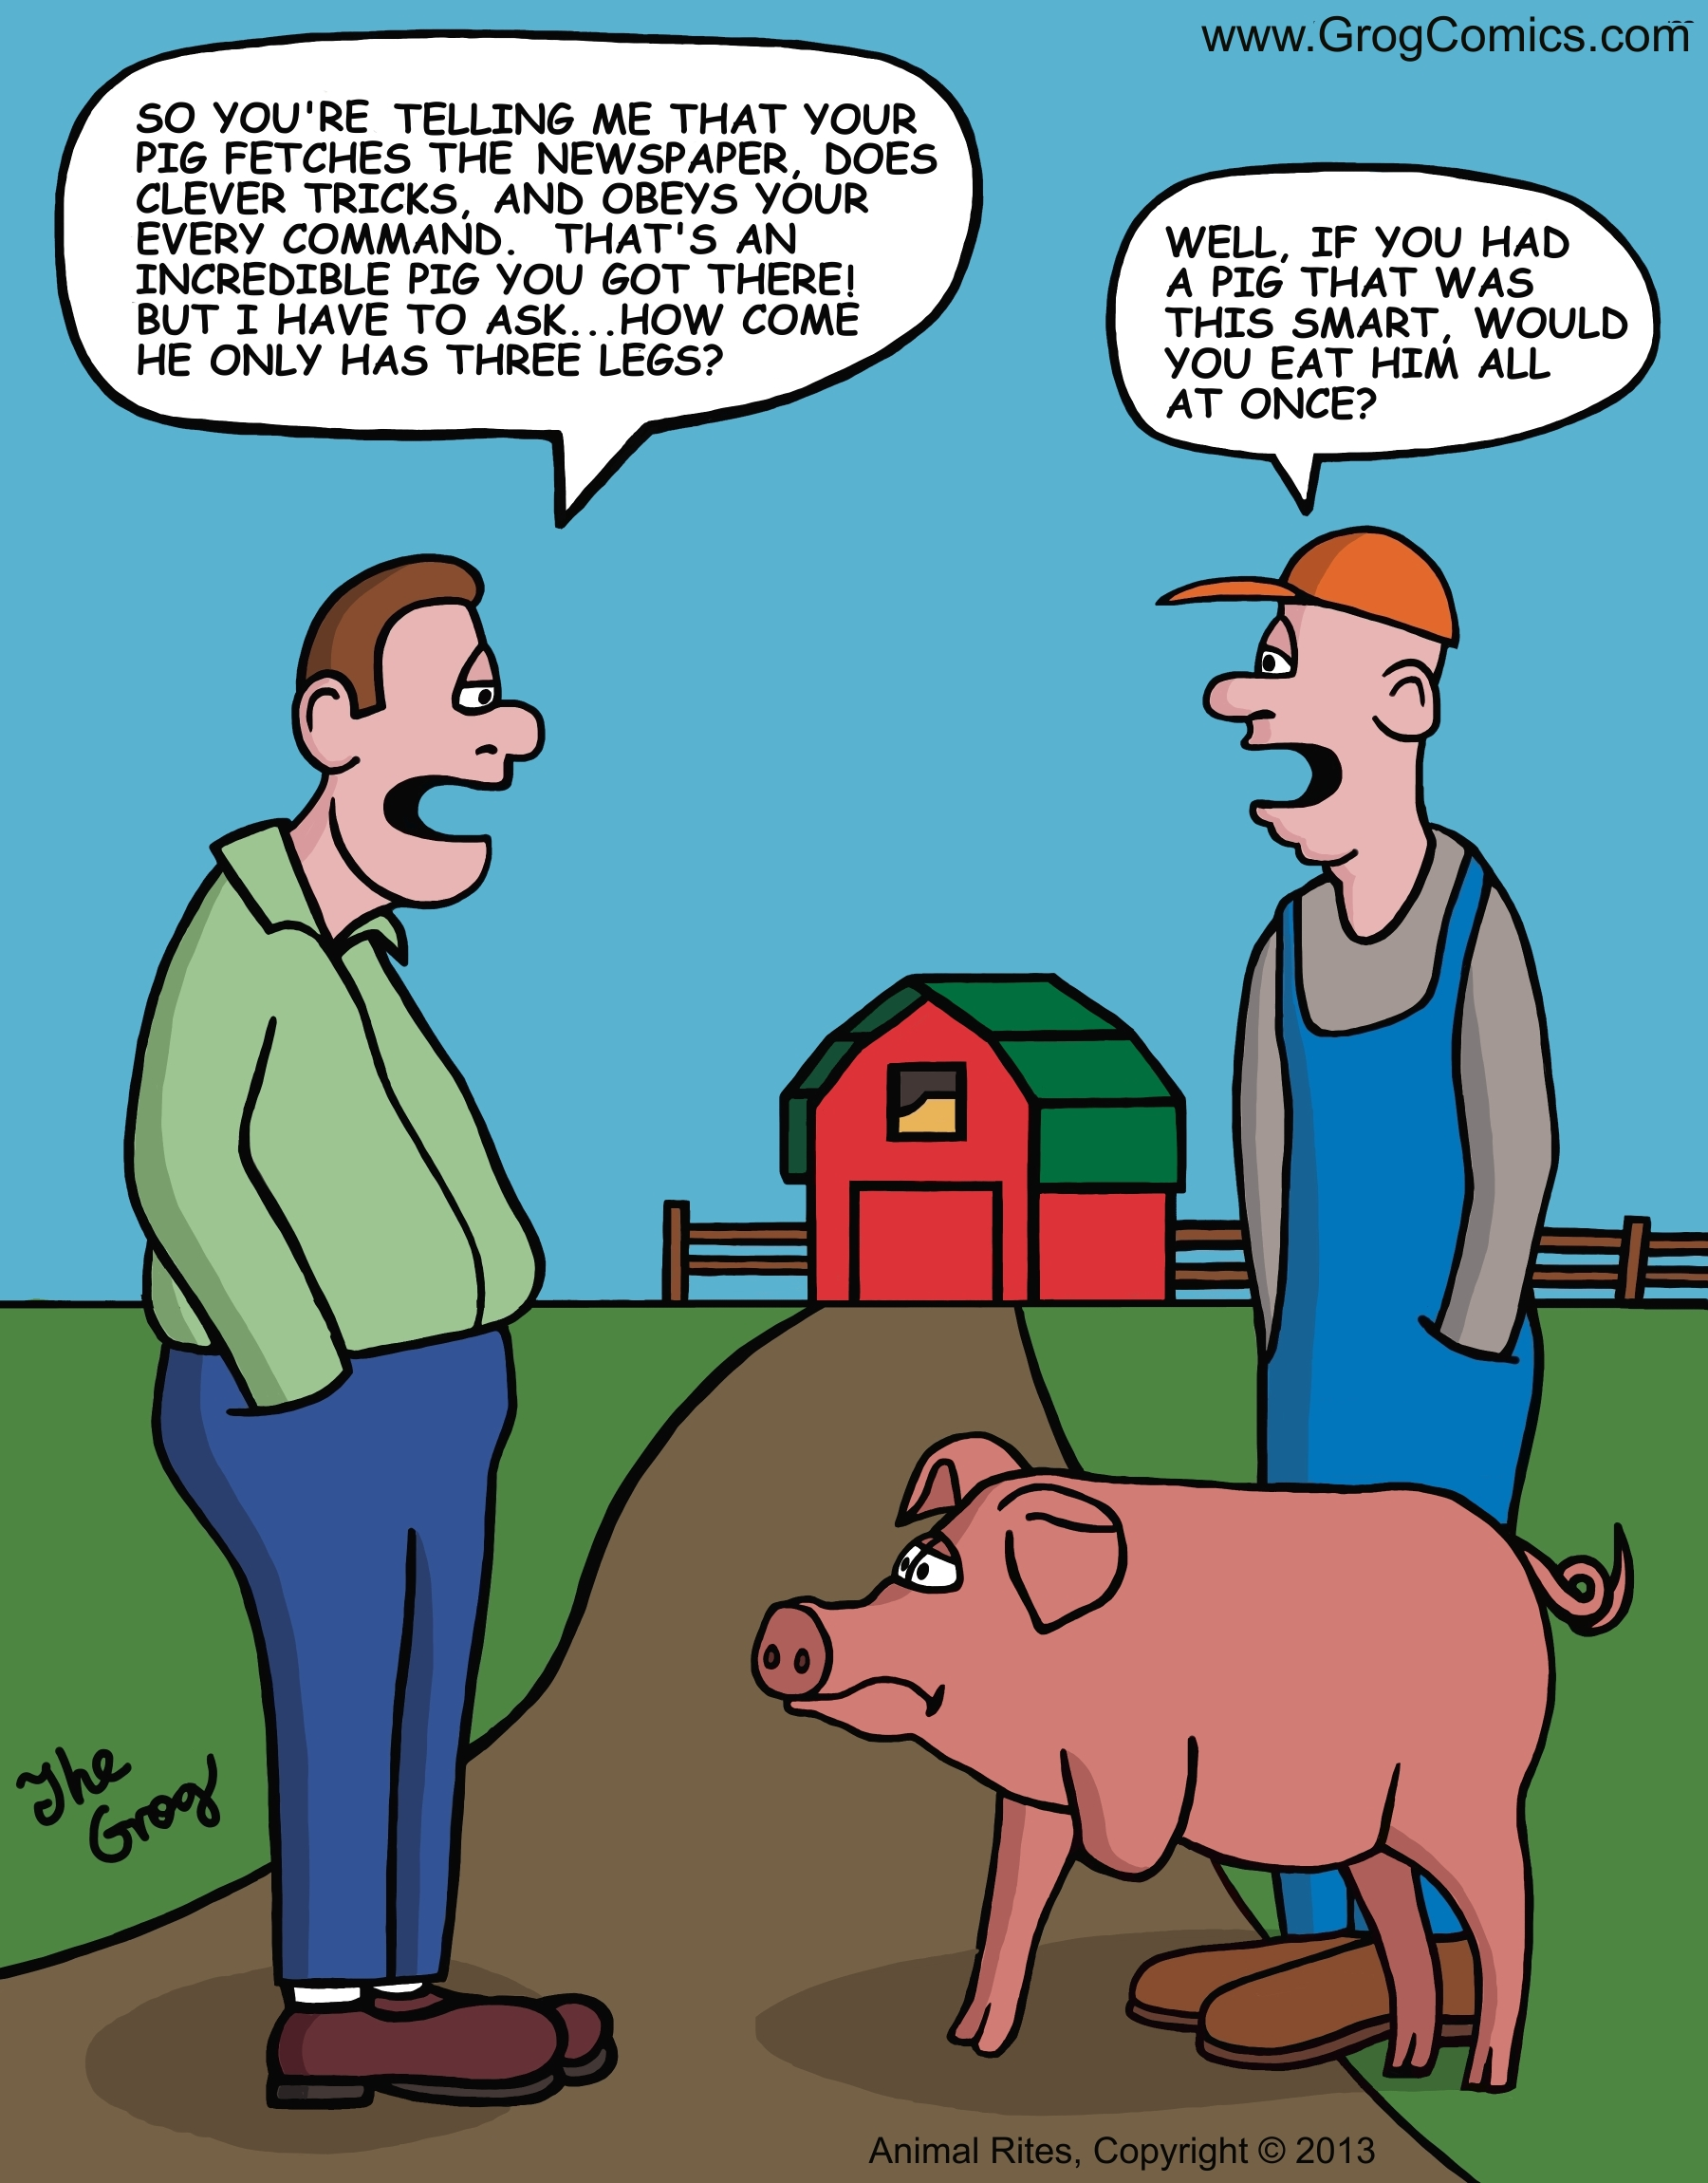 """A farmer shows his friend his new pig. He tells his friend that the pig is the smartest pig he has ever owned. The friend says, """"So you're telling me that your pig fetches the newspaper, does clever tricks, and obeys your every command. That's an incredible pig you got there! But I have to ask...how come he only has three legs?"""" The farmers says, """"Well, if you had a pig that was this smart, would you eat him all at once?"""""""